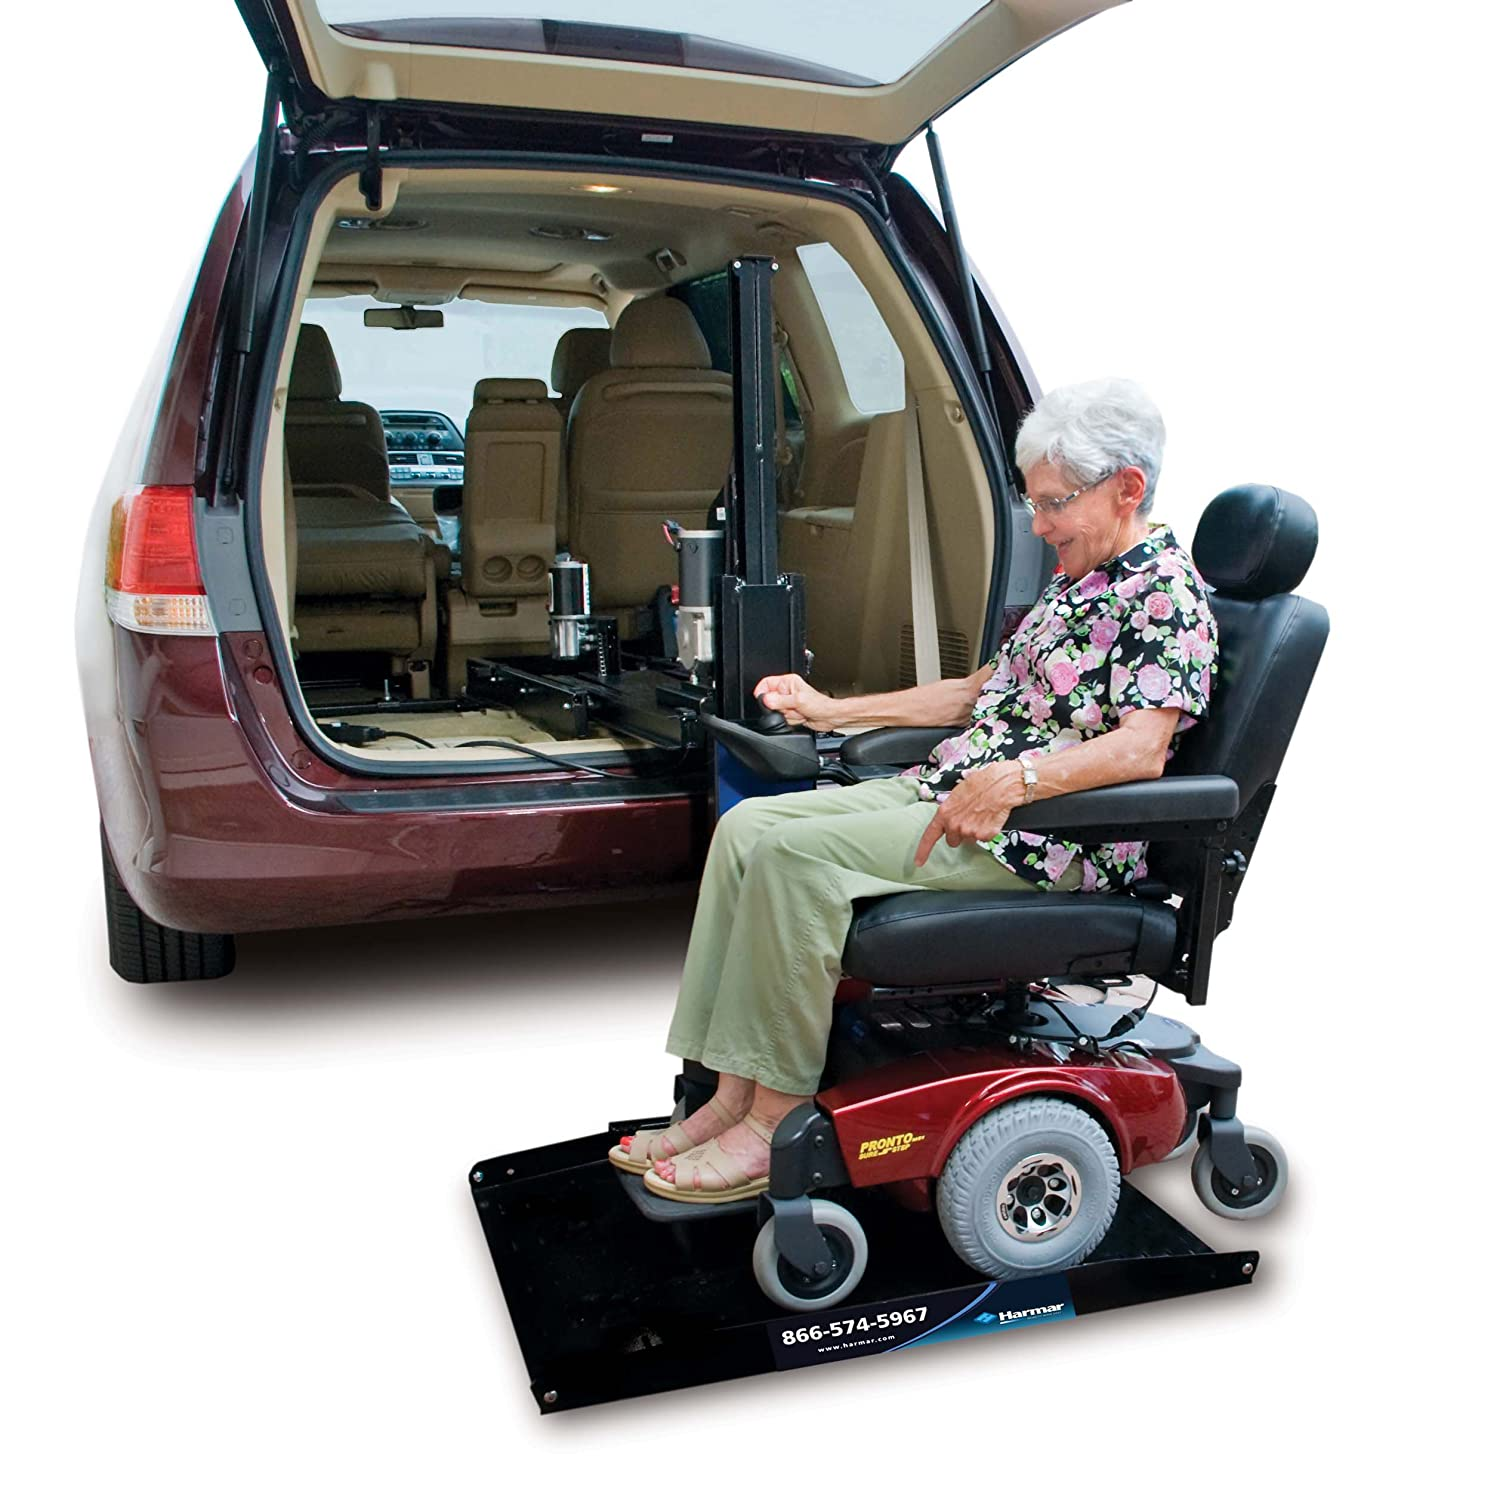 Harmar Mobility Upgraded AL600 Scooter & Wheelchair Hybrid Platform on